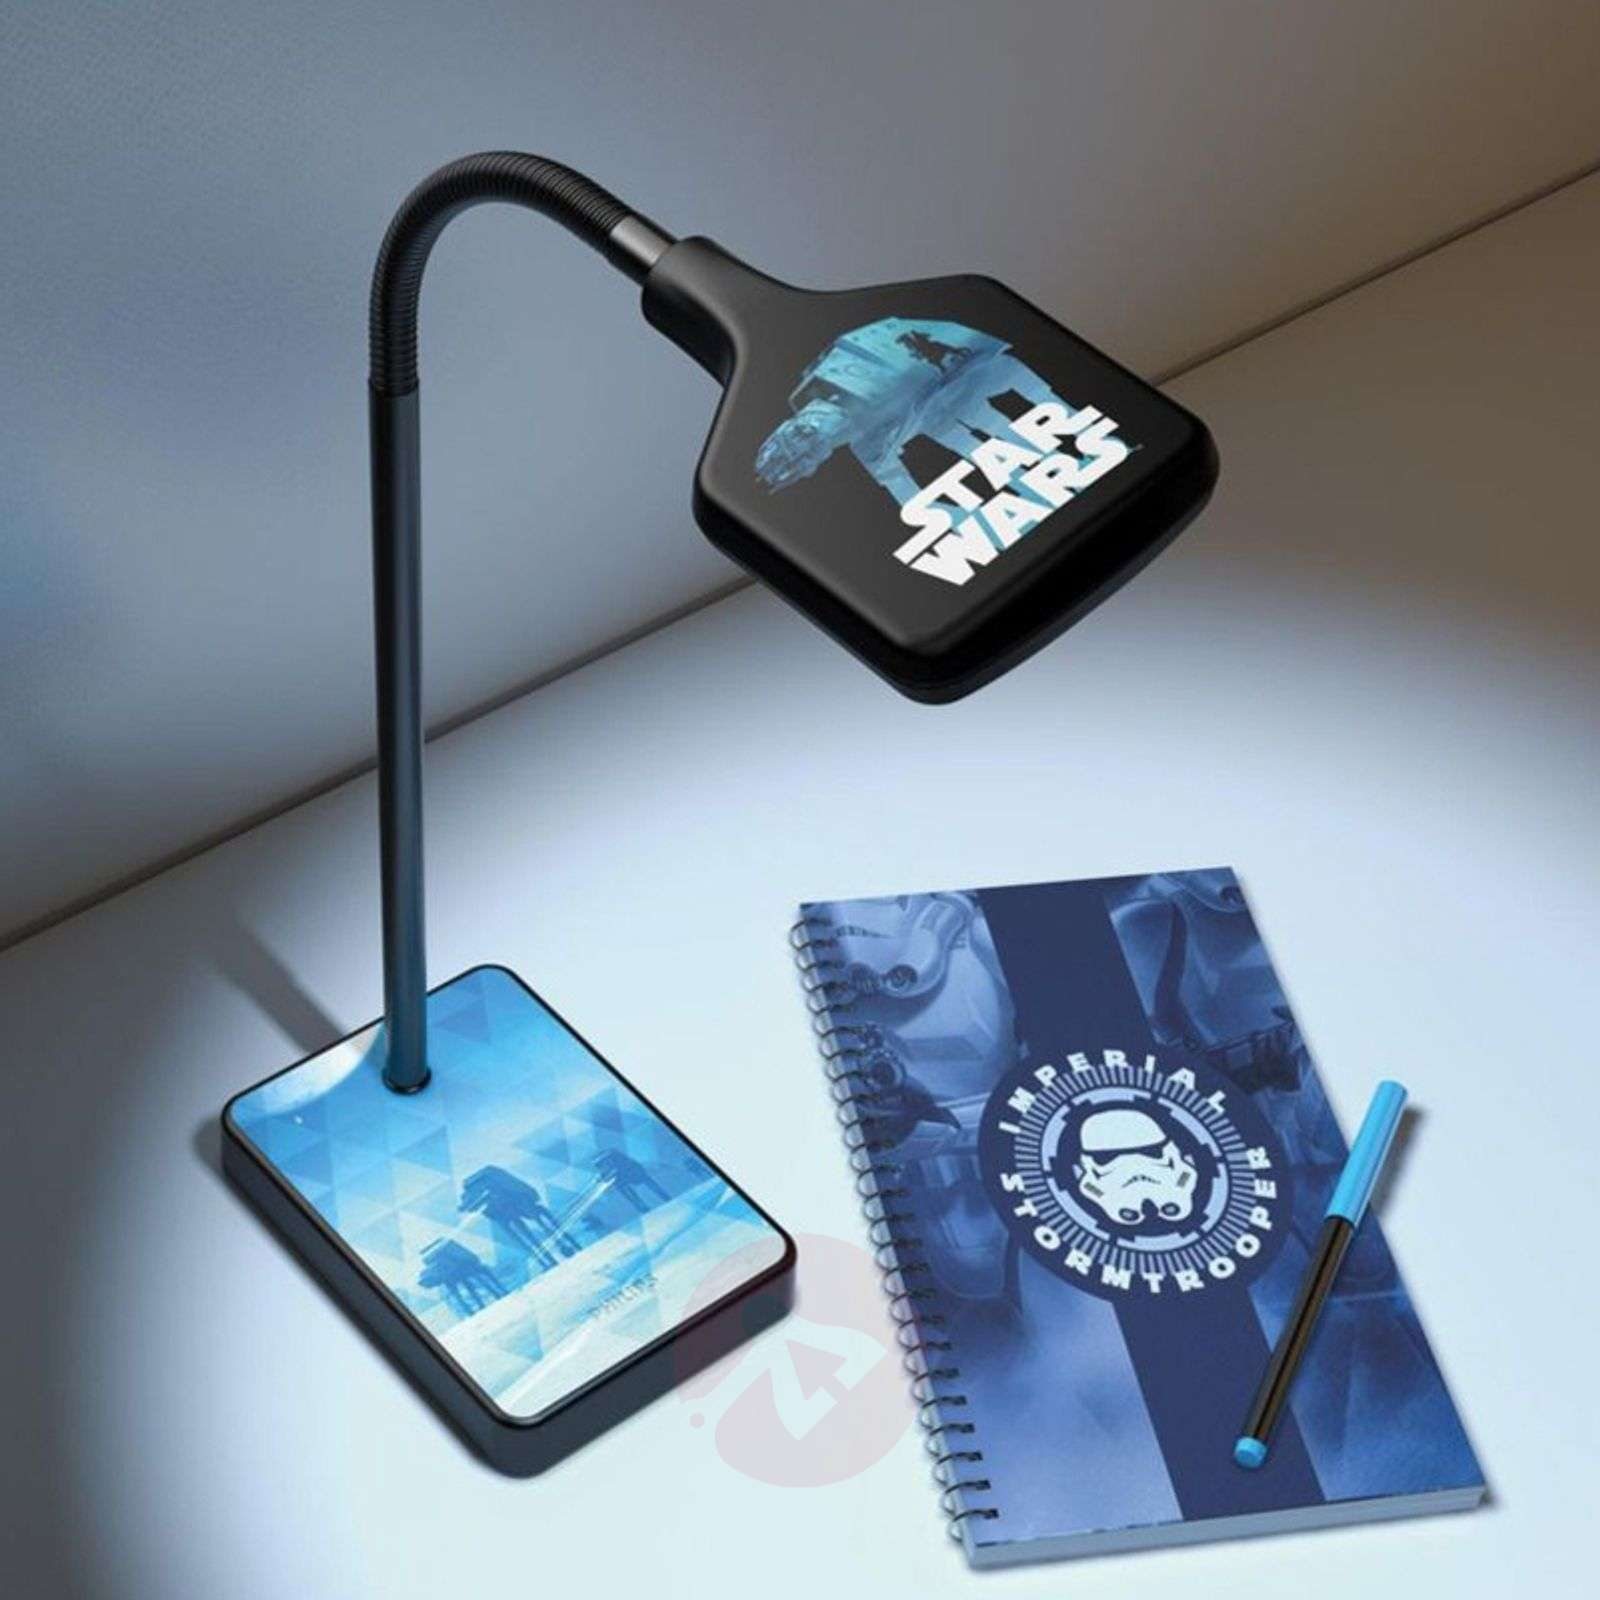 geweldige led bureaulamp star wars. Black Bedroom Furniture Sets. Home Design Ideas